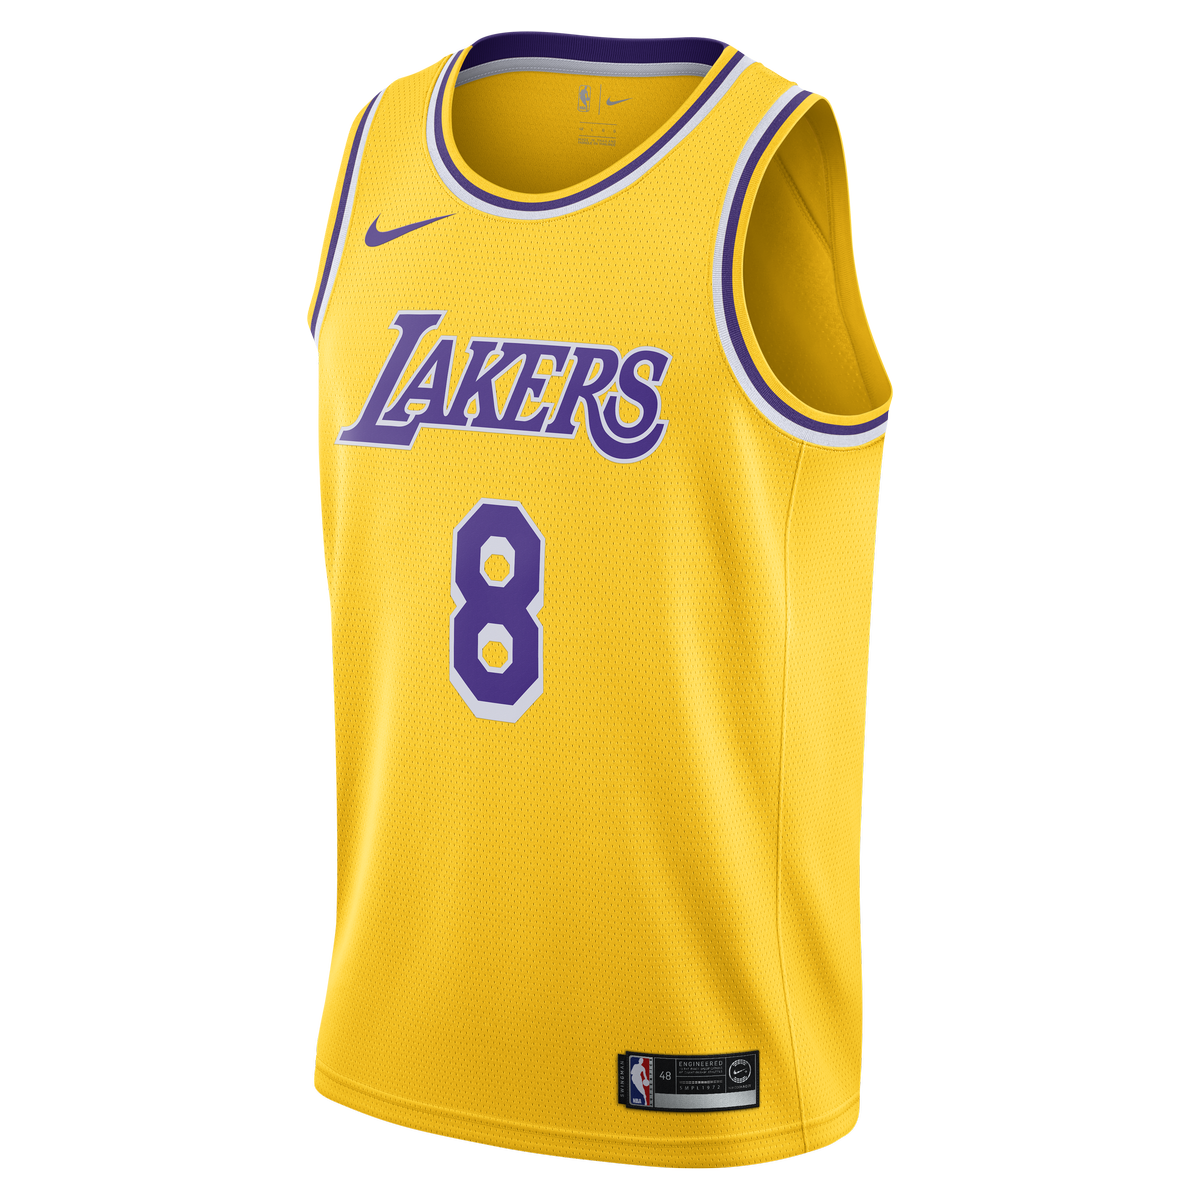 a7a31cc3b718 Los Angeles Lakers Kobe Bryant Nike Gold 2018 19 Swingman Jersey for   109.99 Fanatics